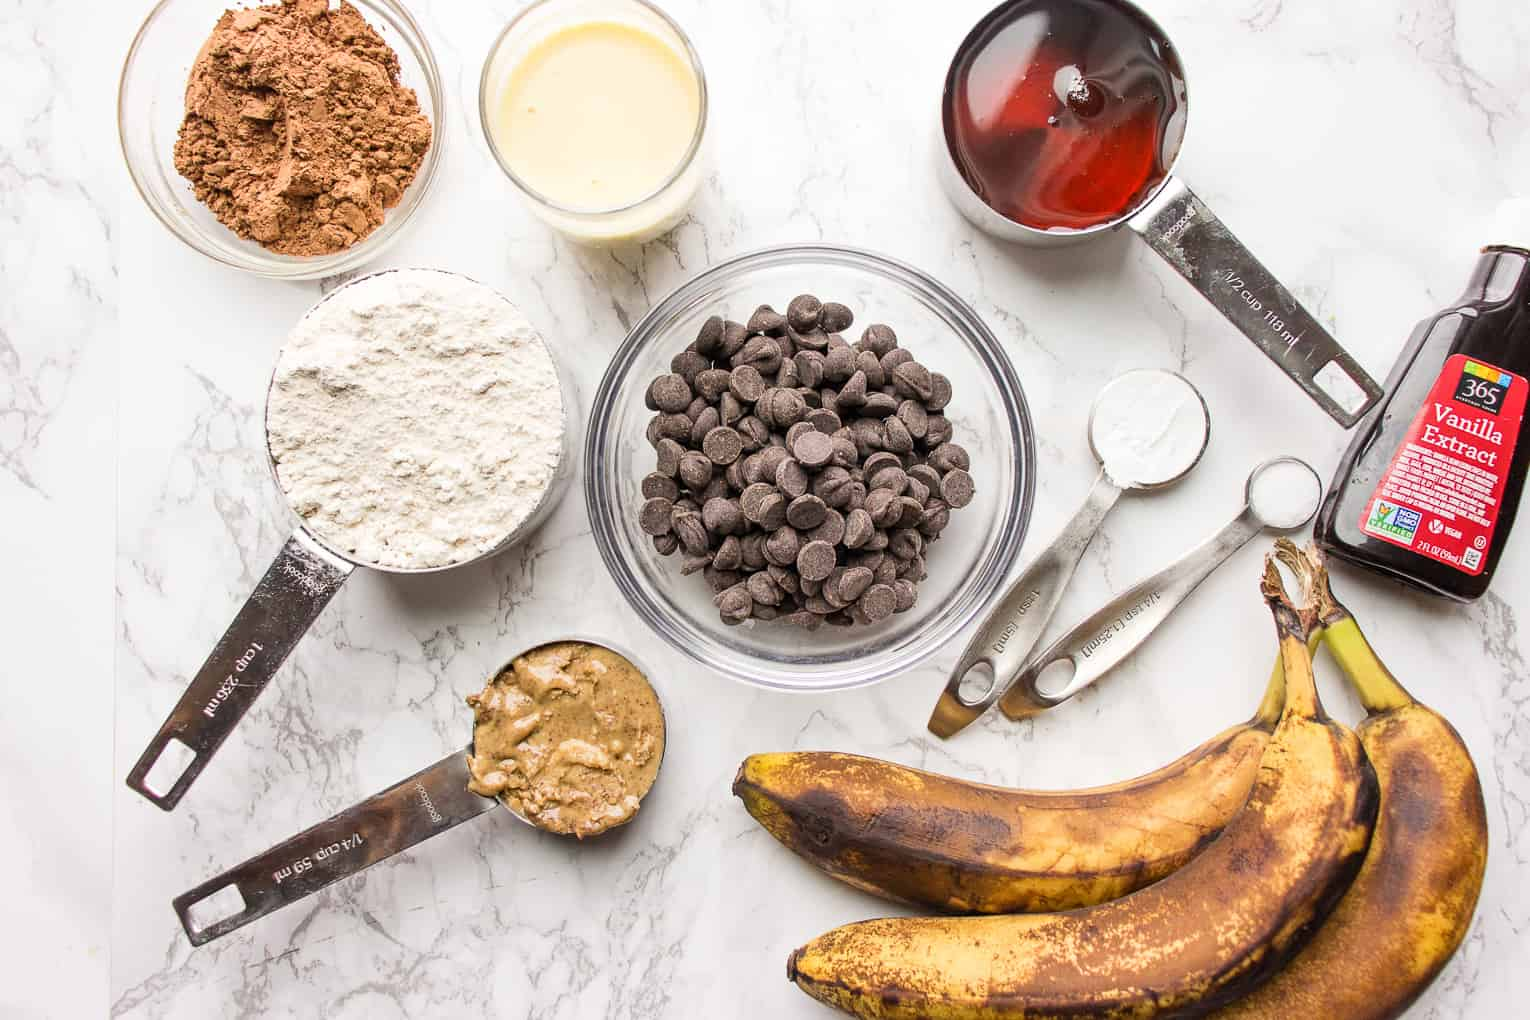 Ingredients for Banana Chocolate Muffins